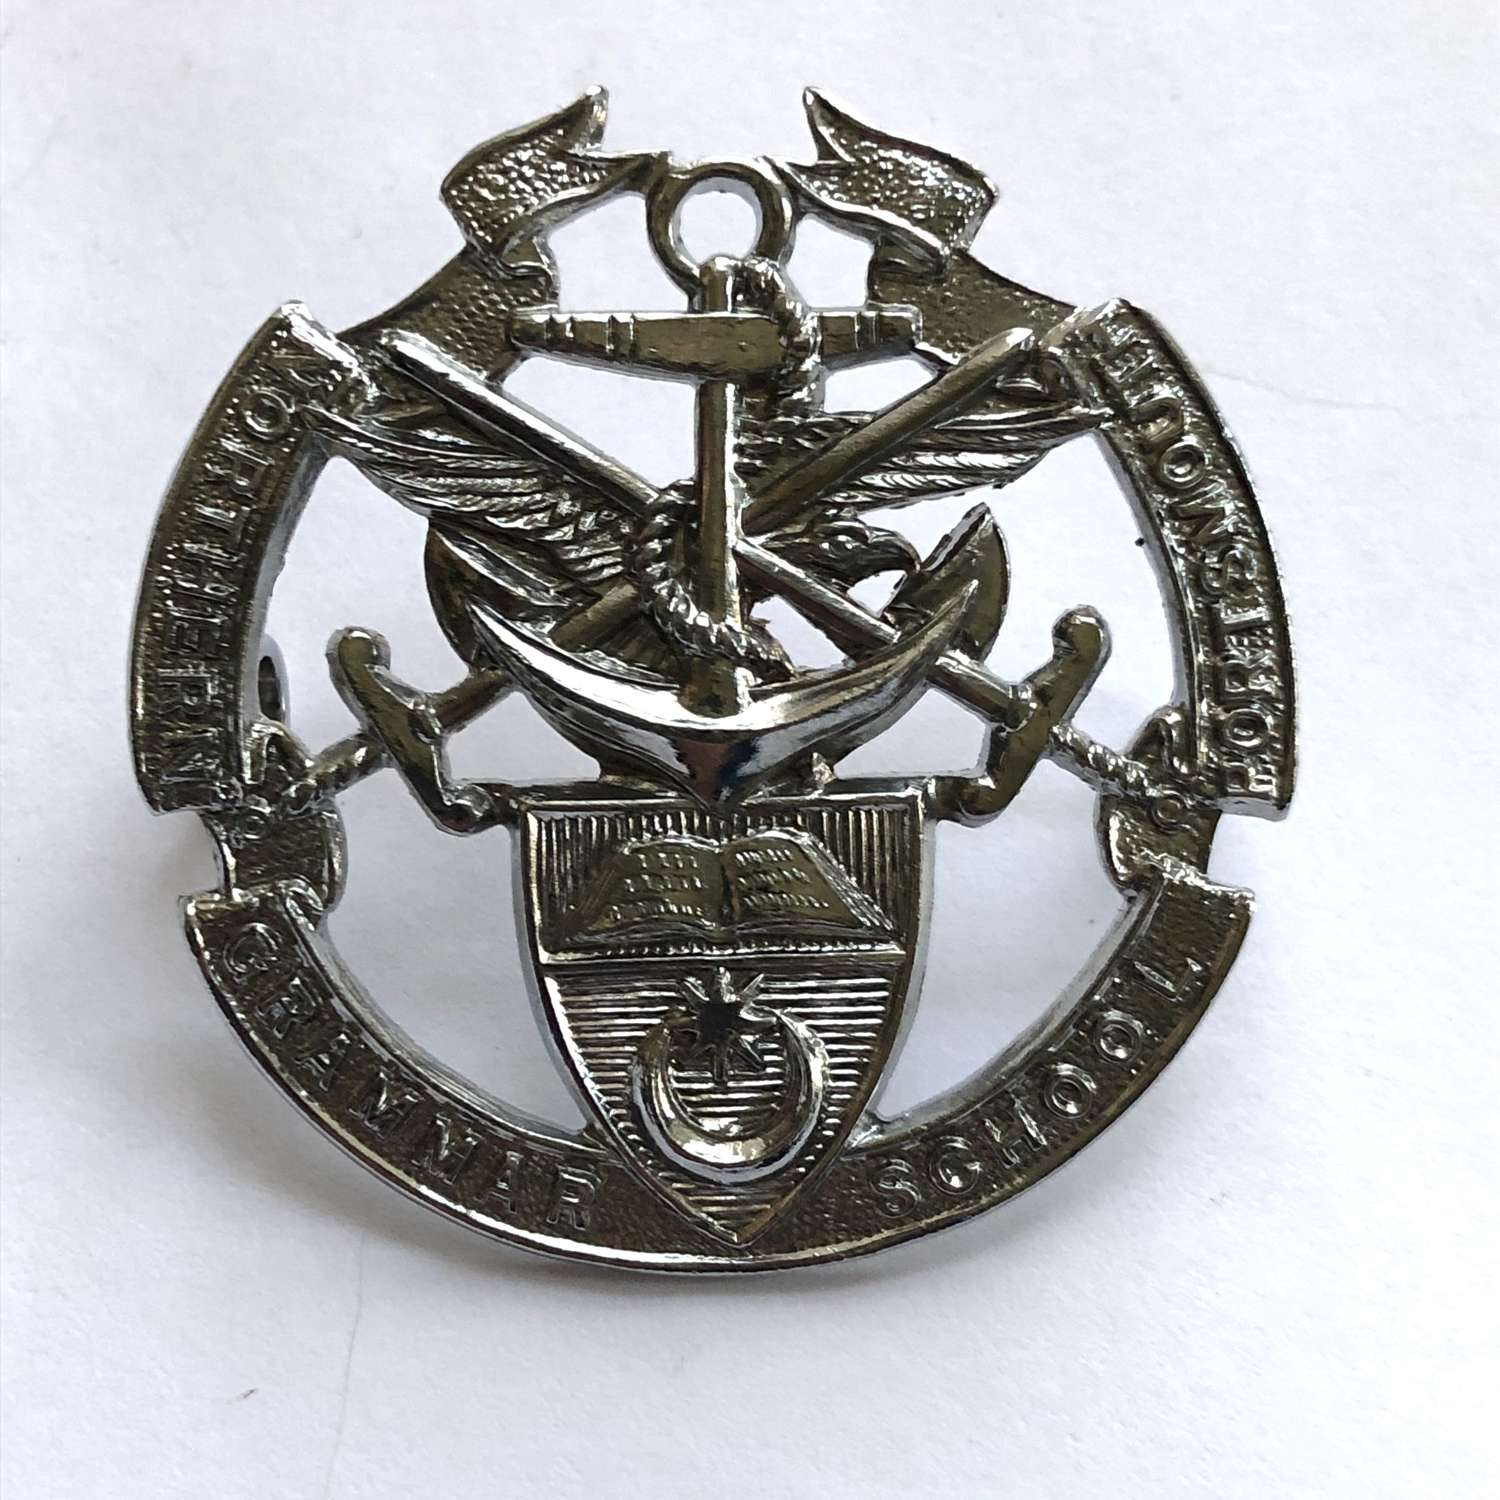 Portsmouth Northern Grammar School OTC / CCF Hampshire cap badge